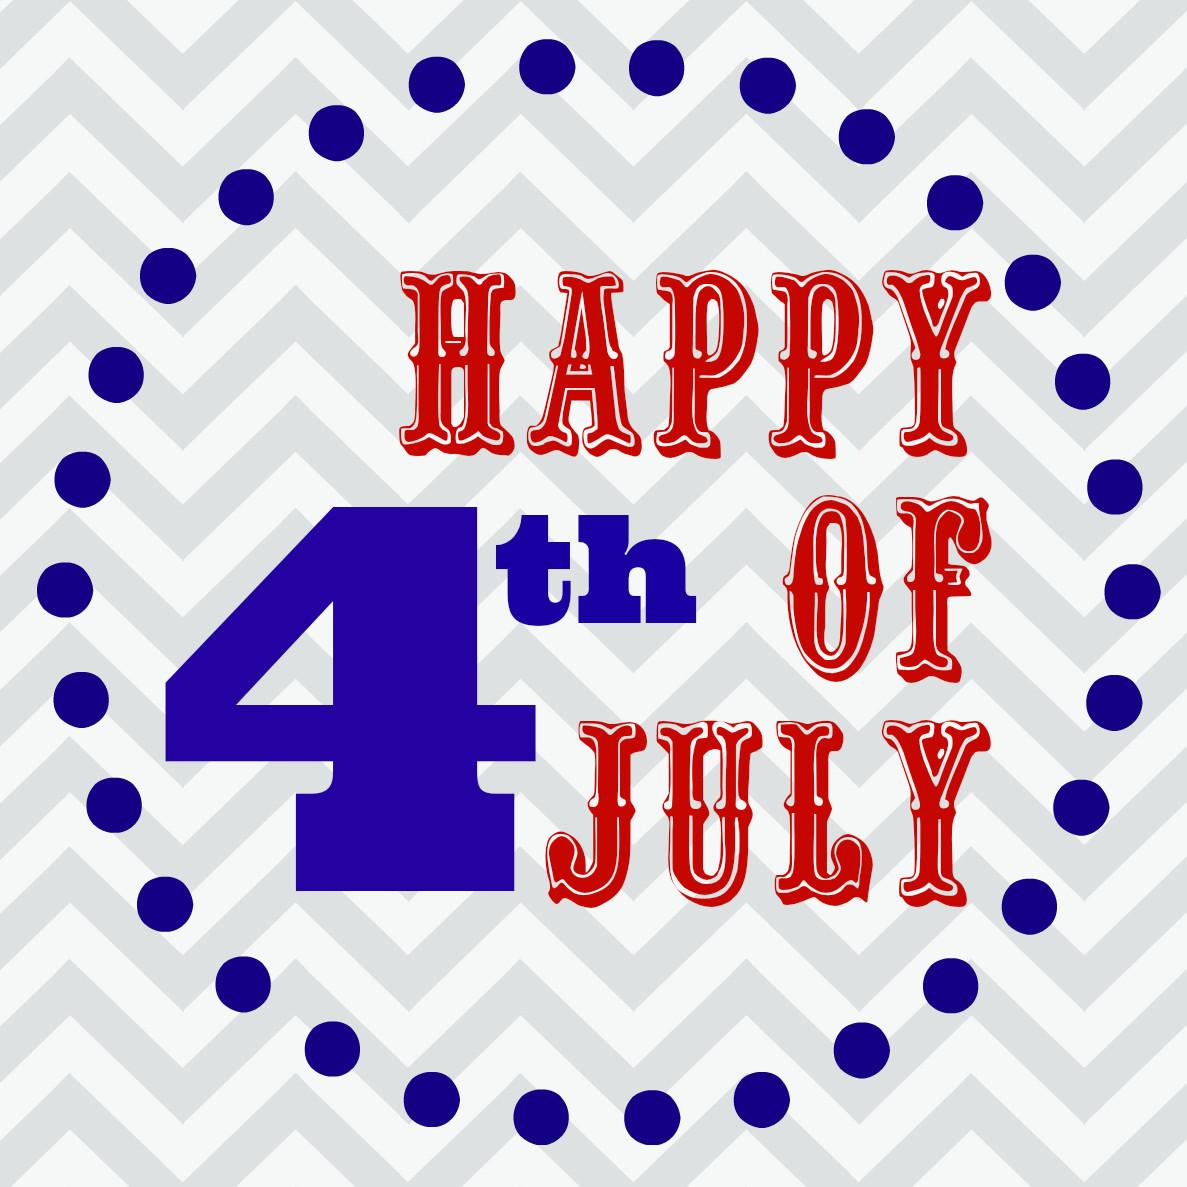 Happy 4th July Wishes Greetings